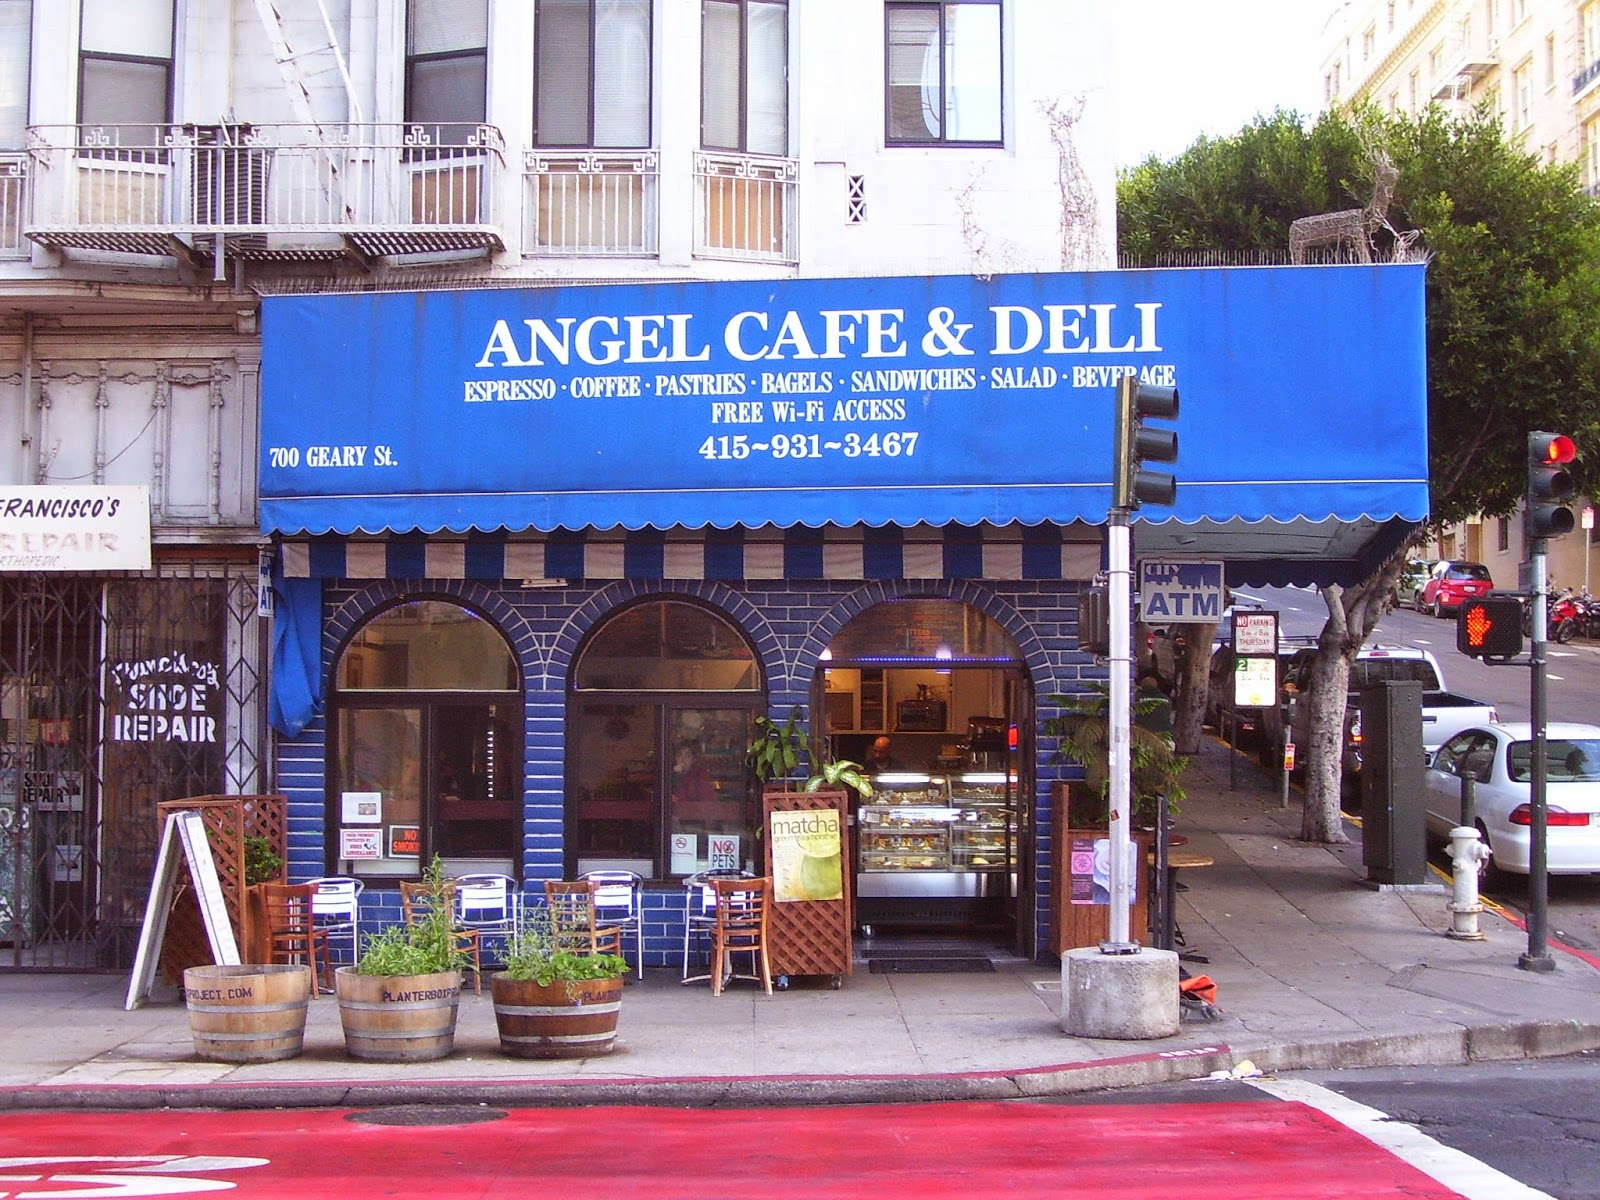 Angel Cafe